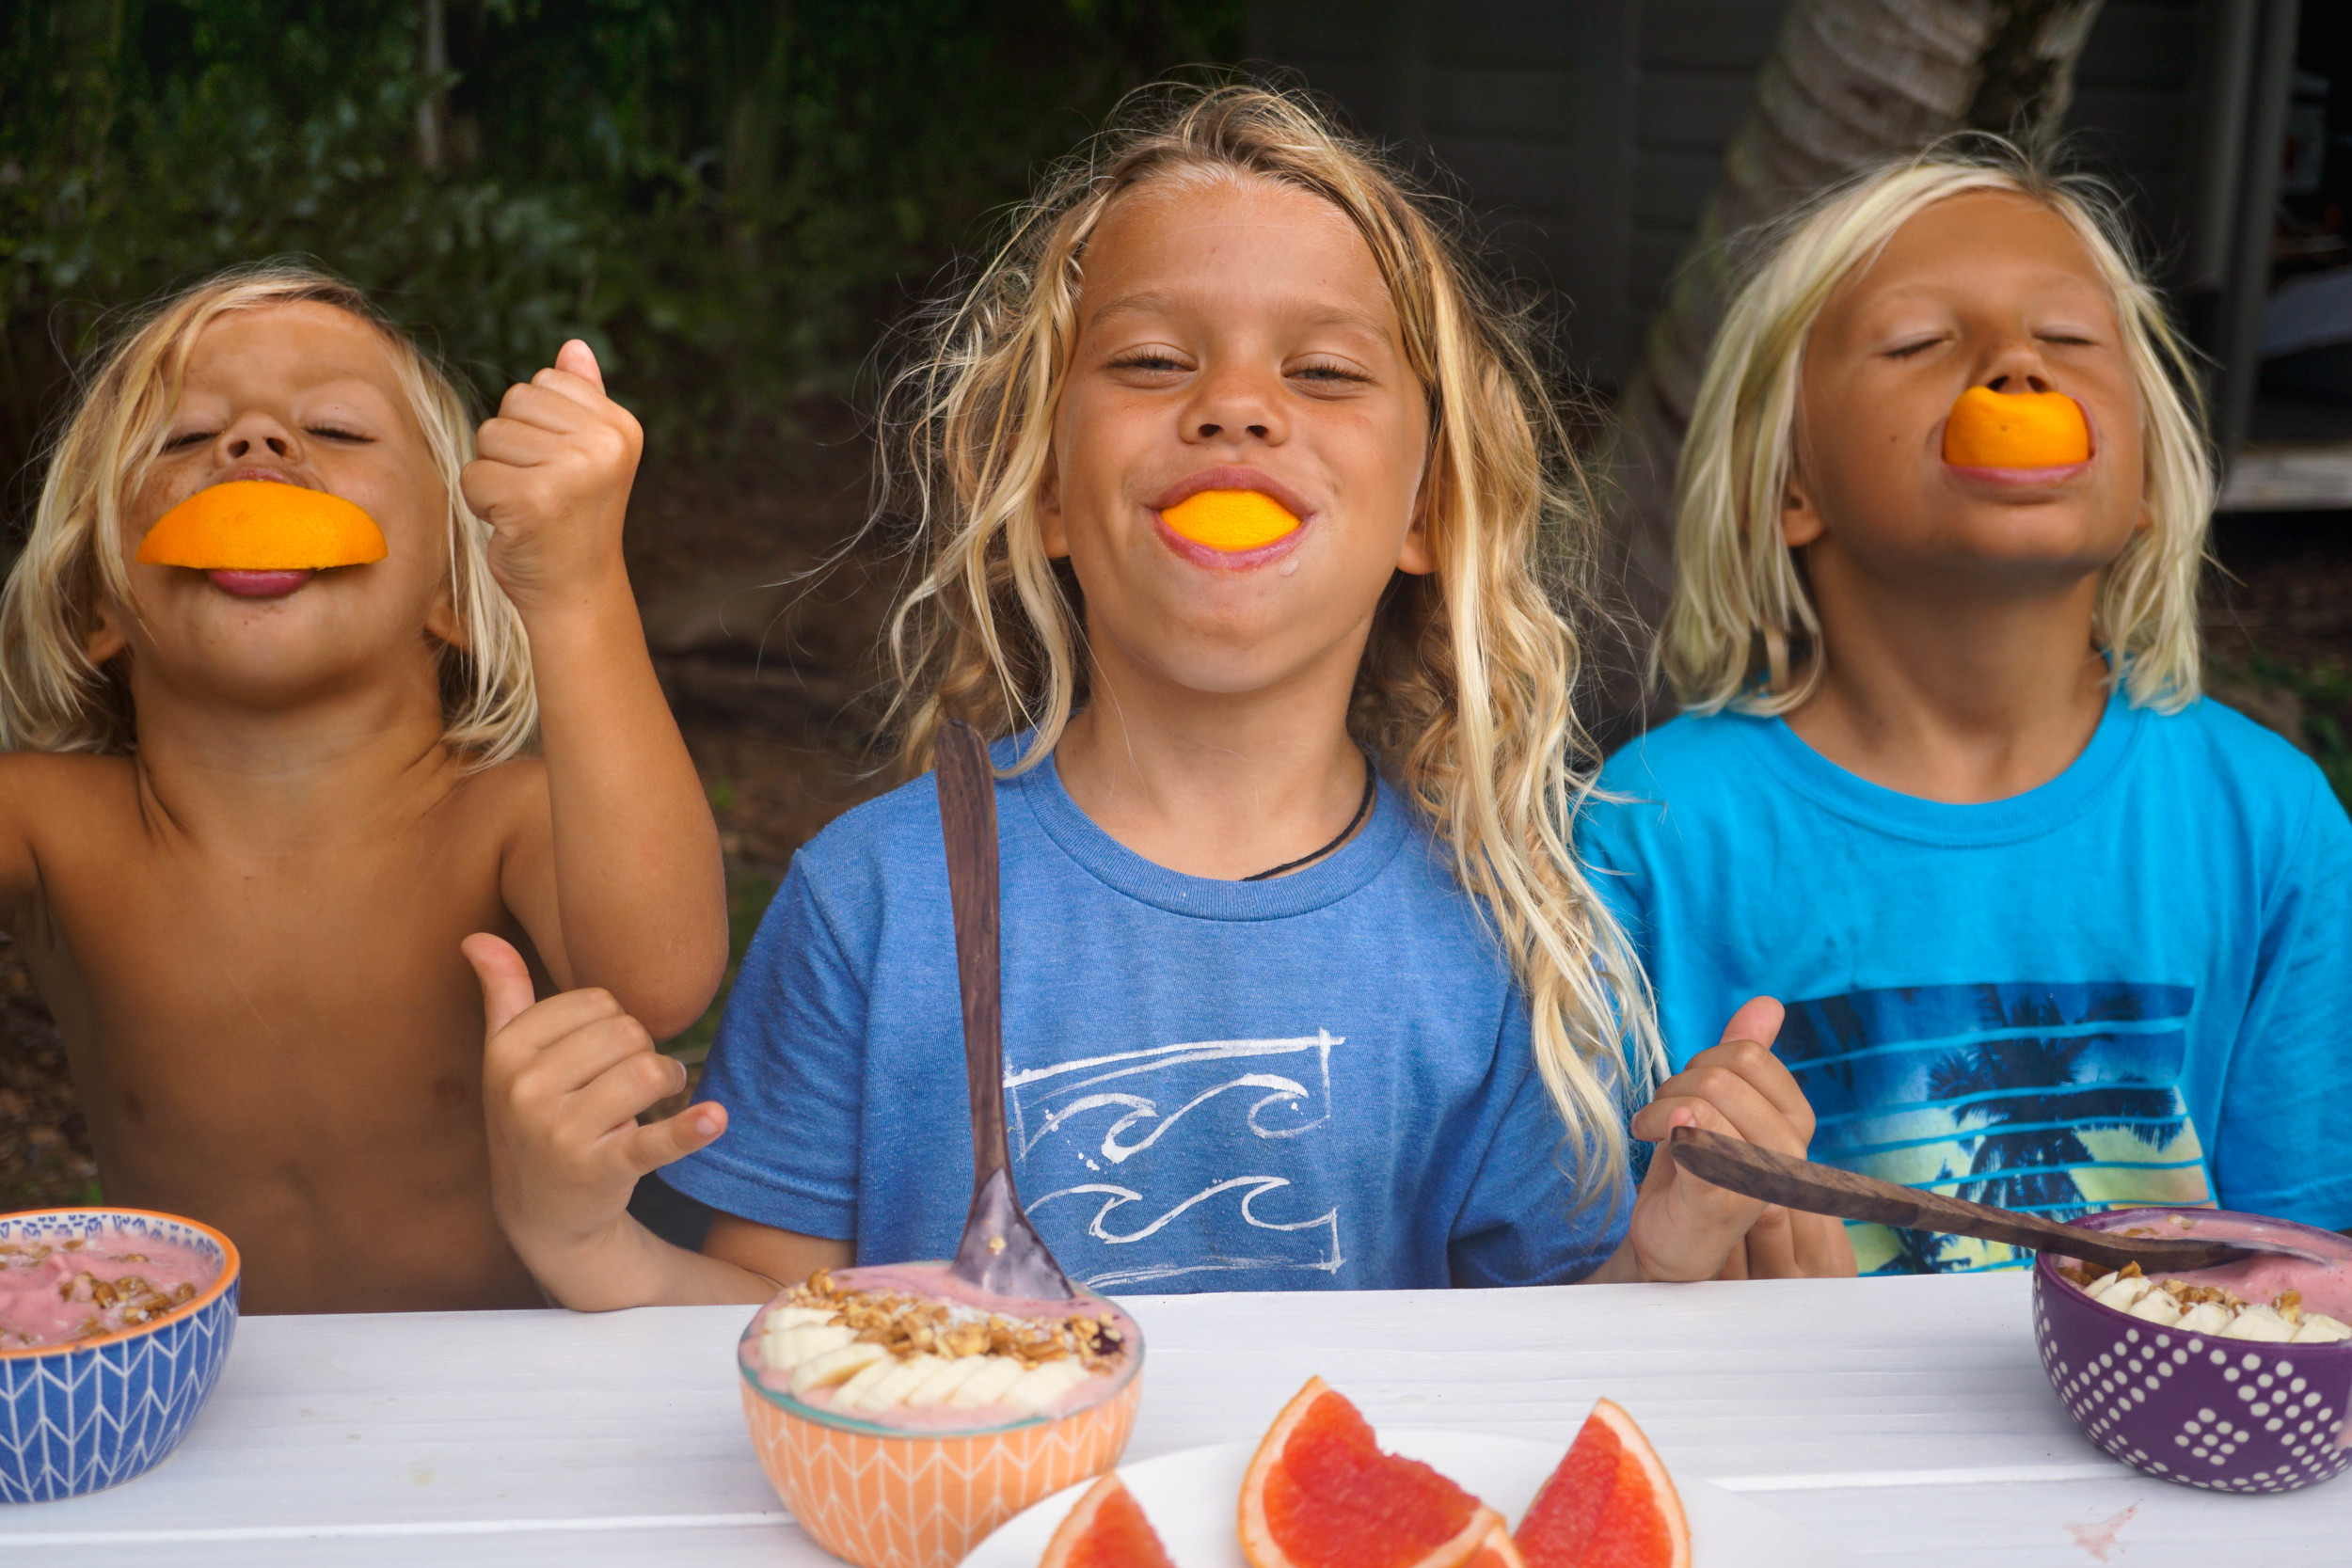 love these kids! smoothie bowls and orange smiles for the win! haha